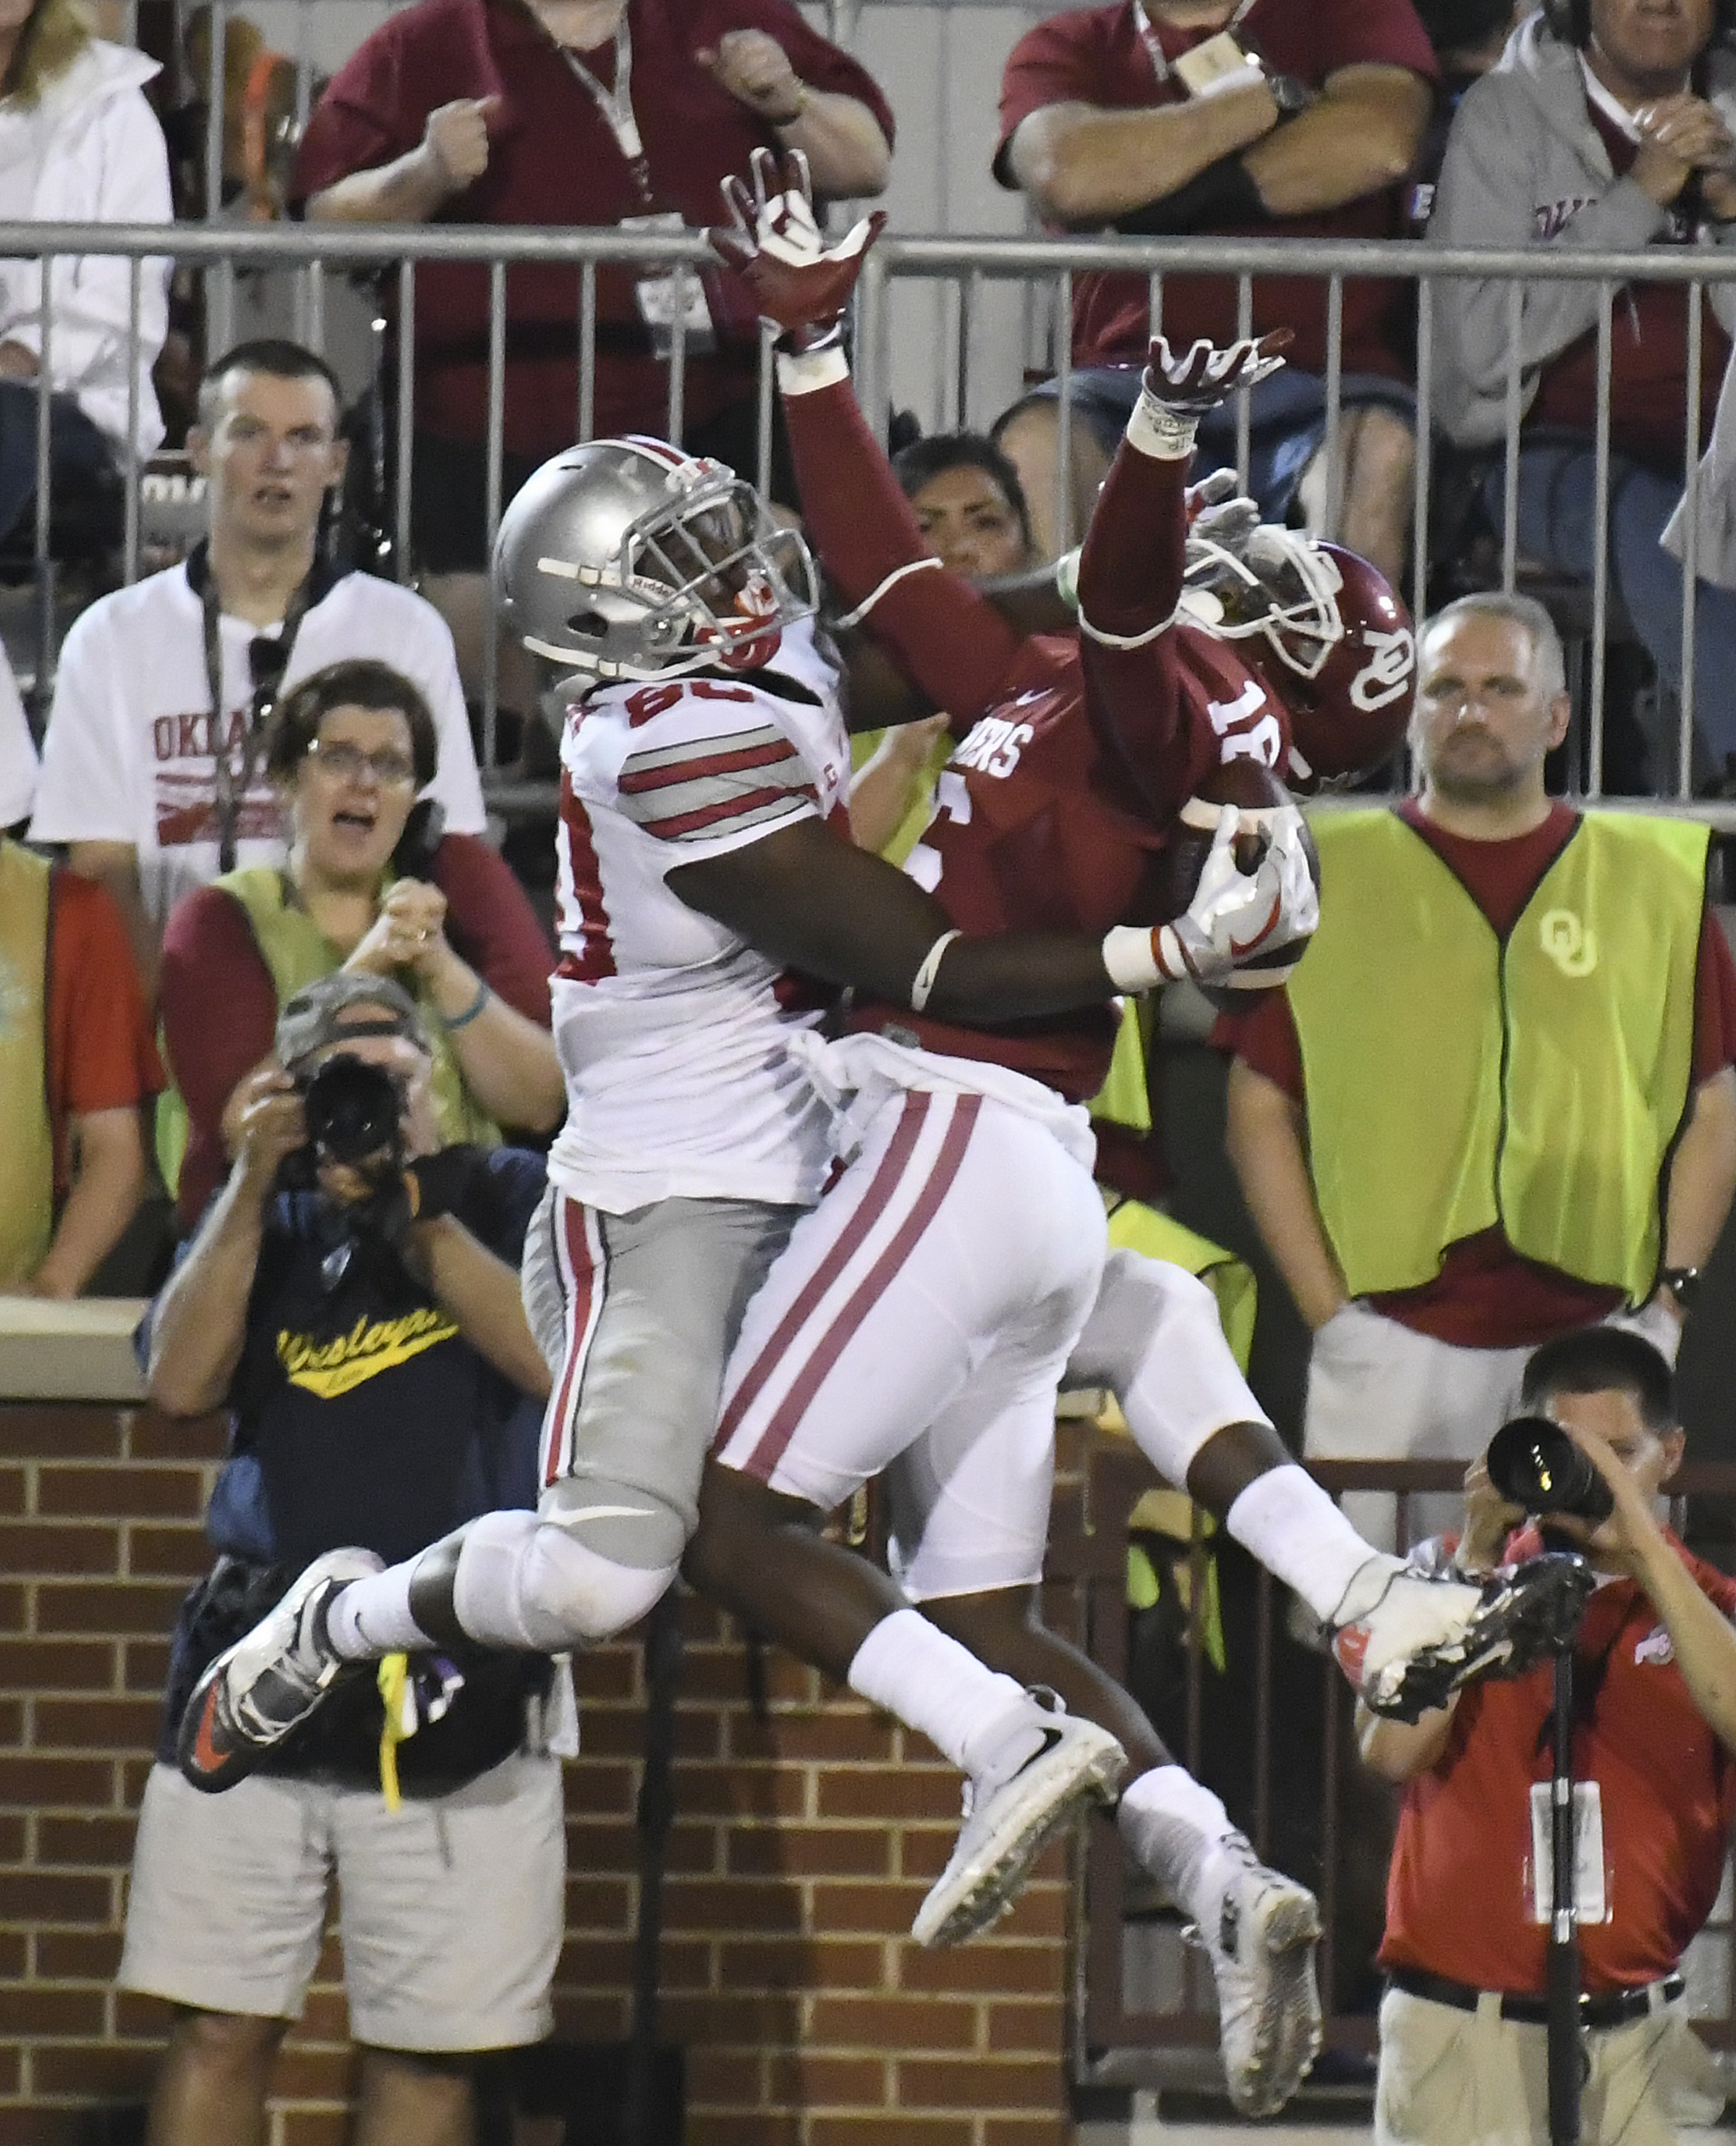 FILE - In this Sept. 17, 2016, file photo, Ohio State's Noah Brown catches a touchdown pass on the back of Oklahoma's Michiah Quick during the second quarter of an NCAA college football game in Norman, Okla. The Ohio State Buckeyes are exactly where they